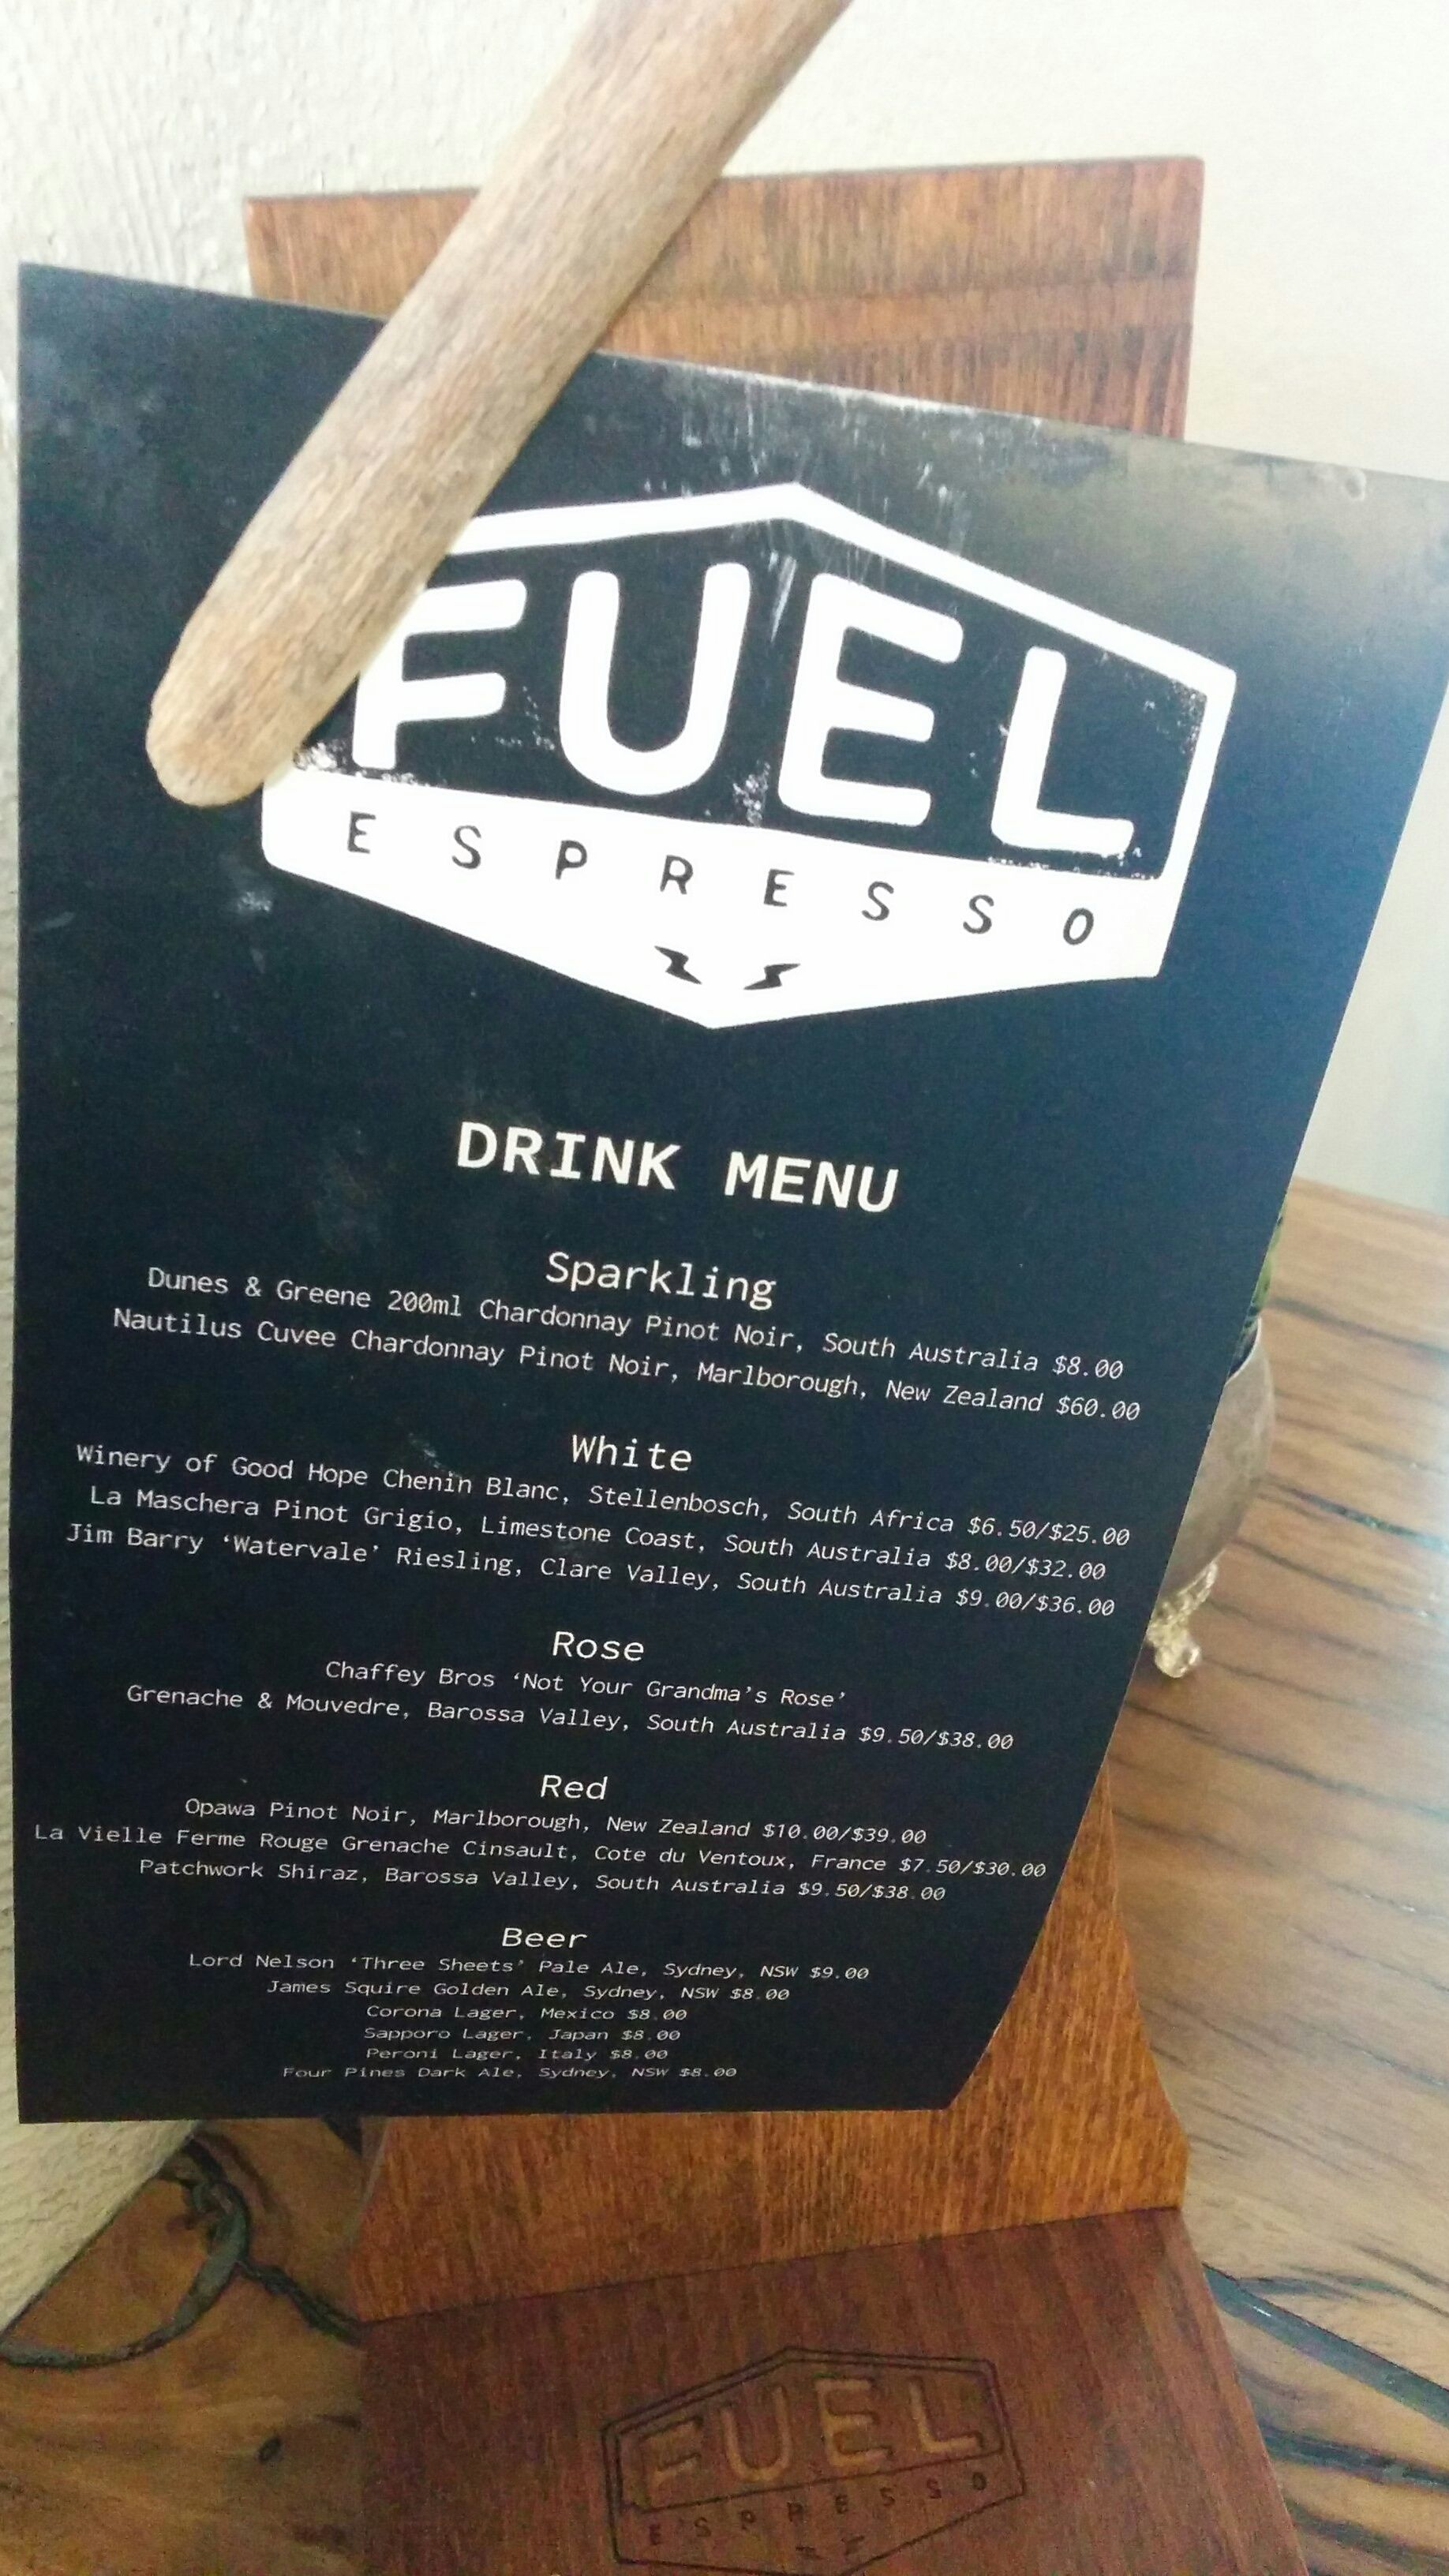 FUEL ESPRESSO BAR IN THE HEART OF BROOKIE!